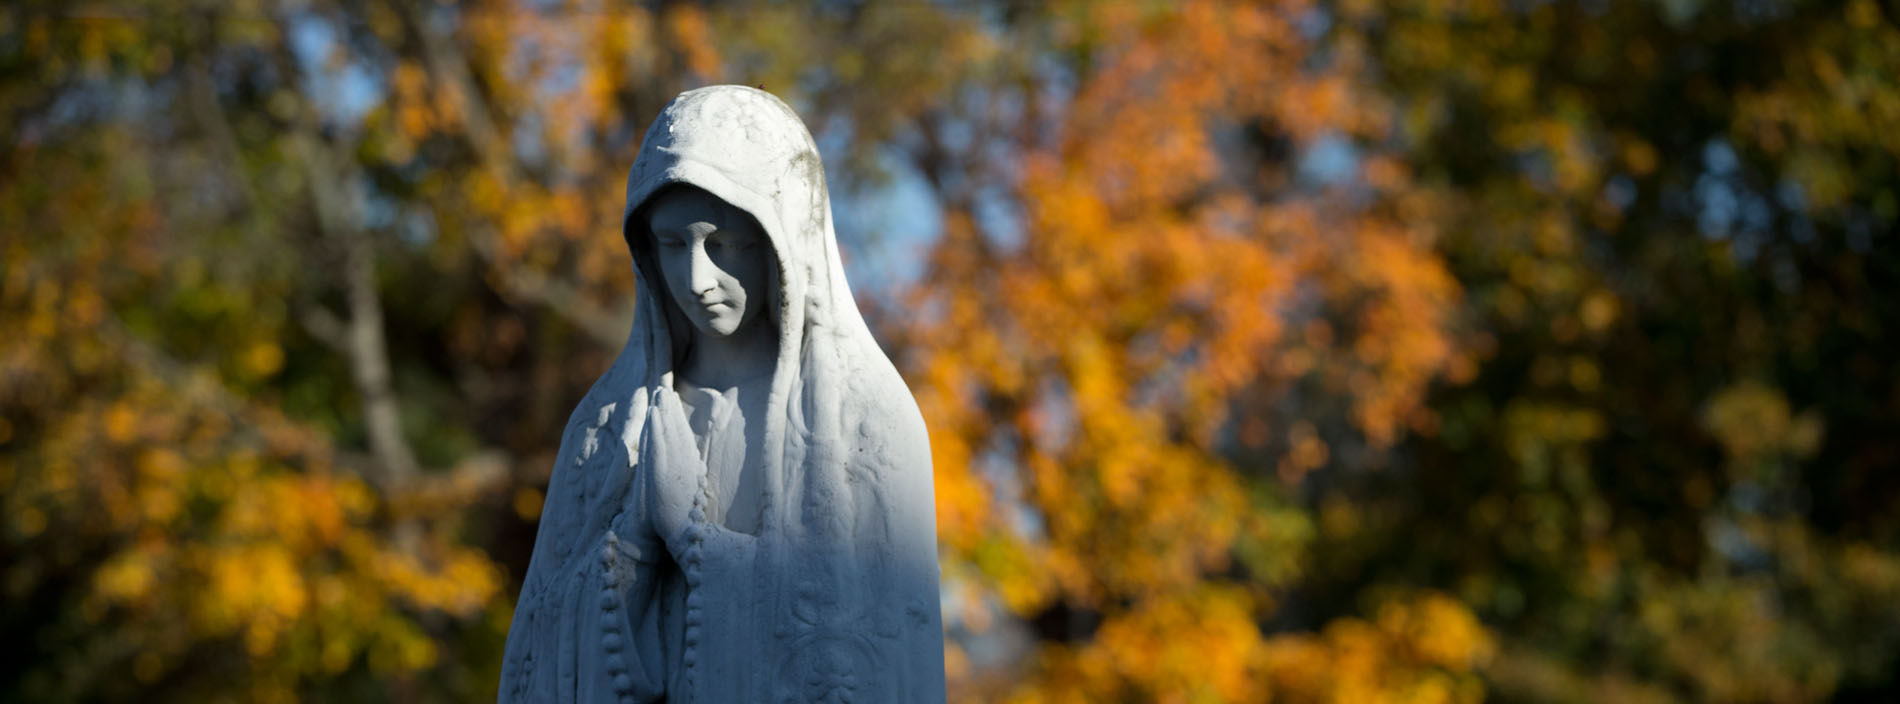 Homepage_Slider_Mary_Statue